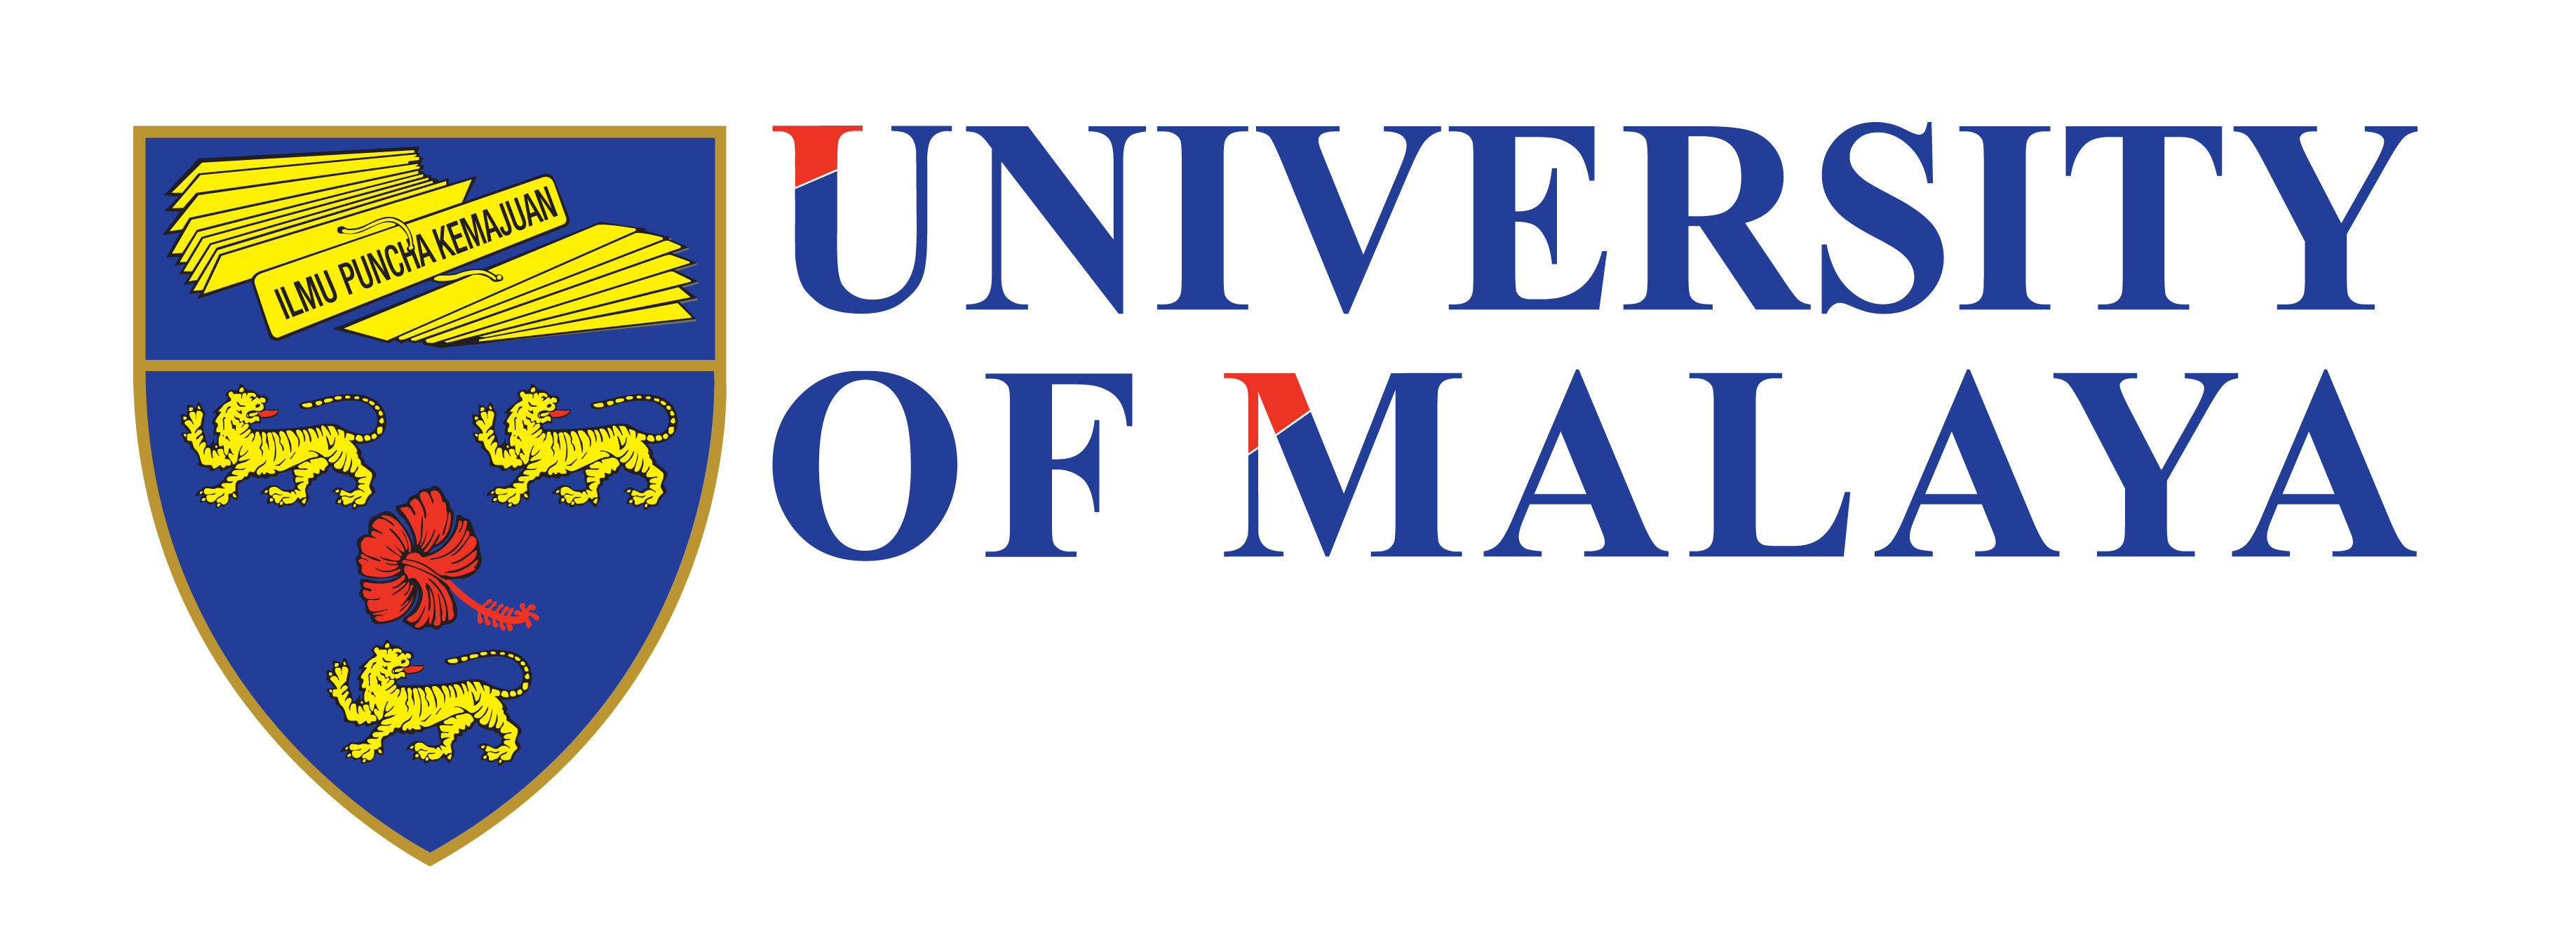 Univeriti of Malaya